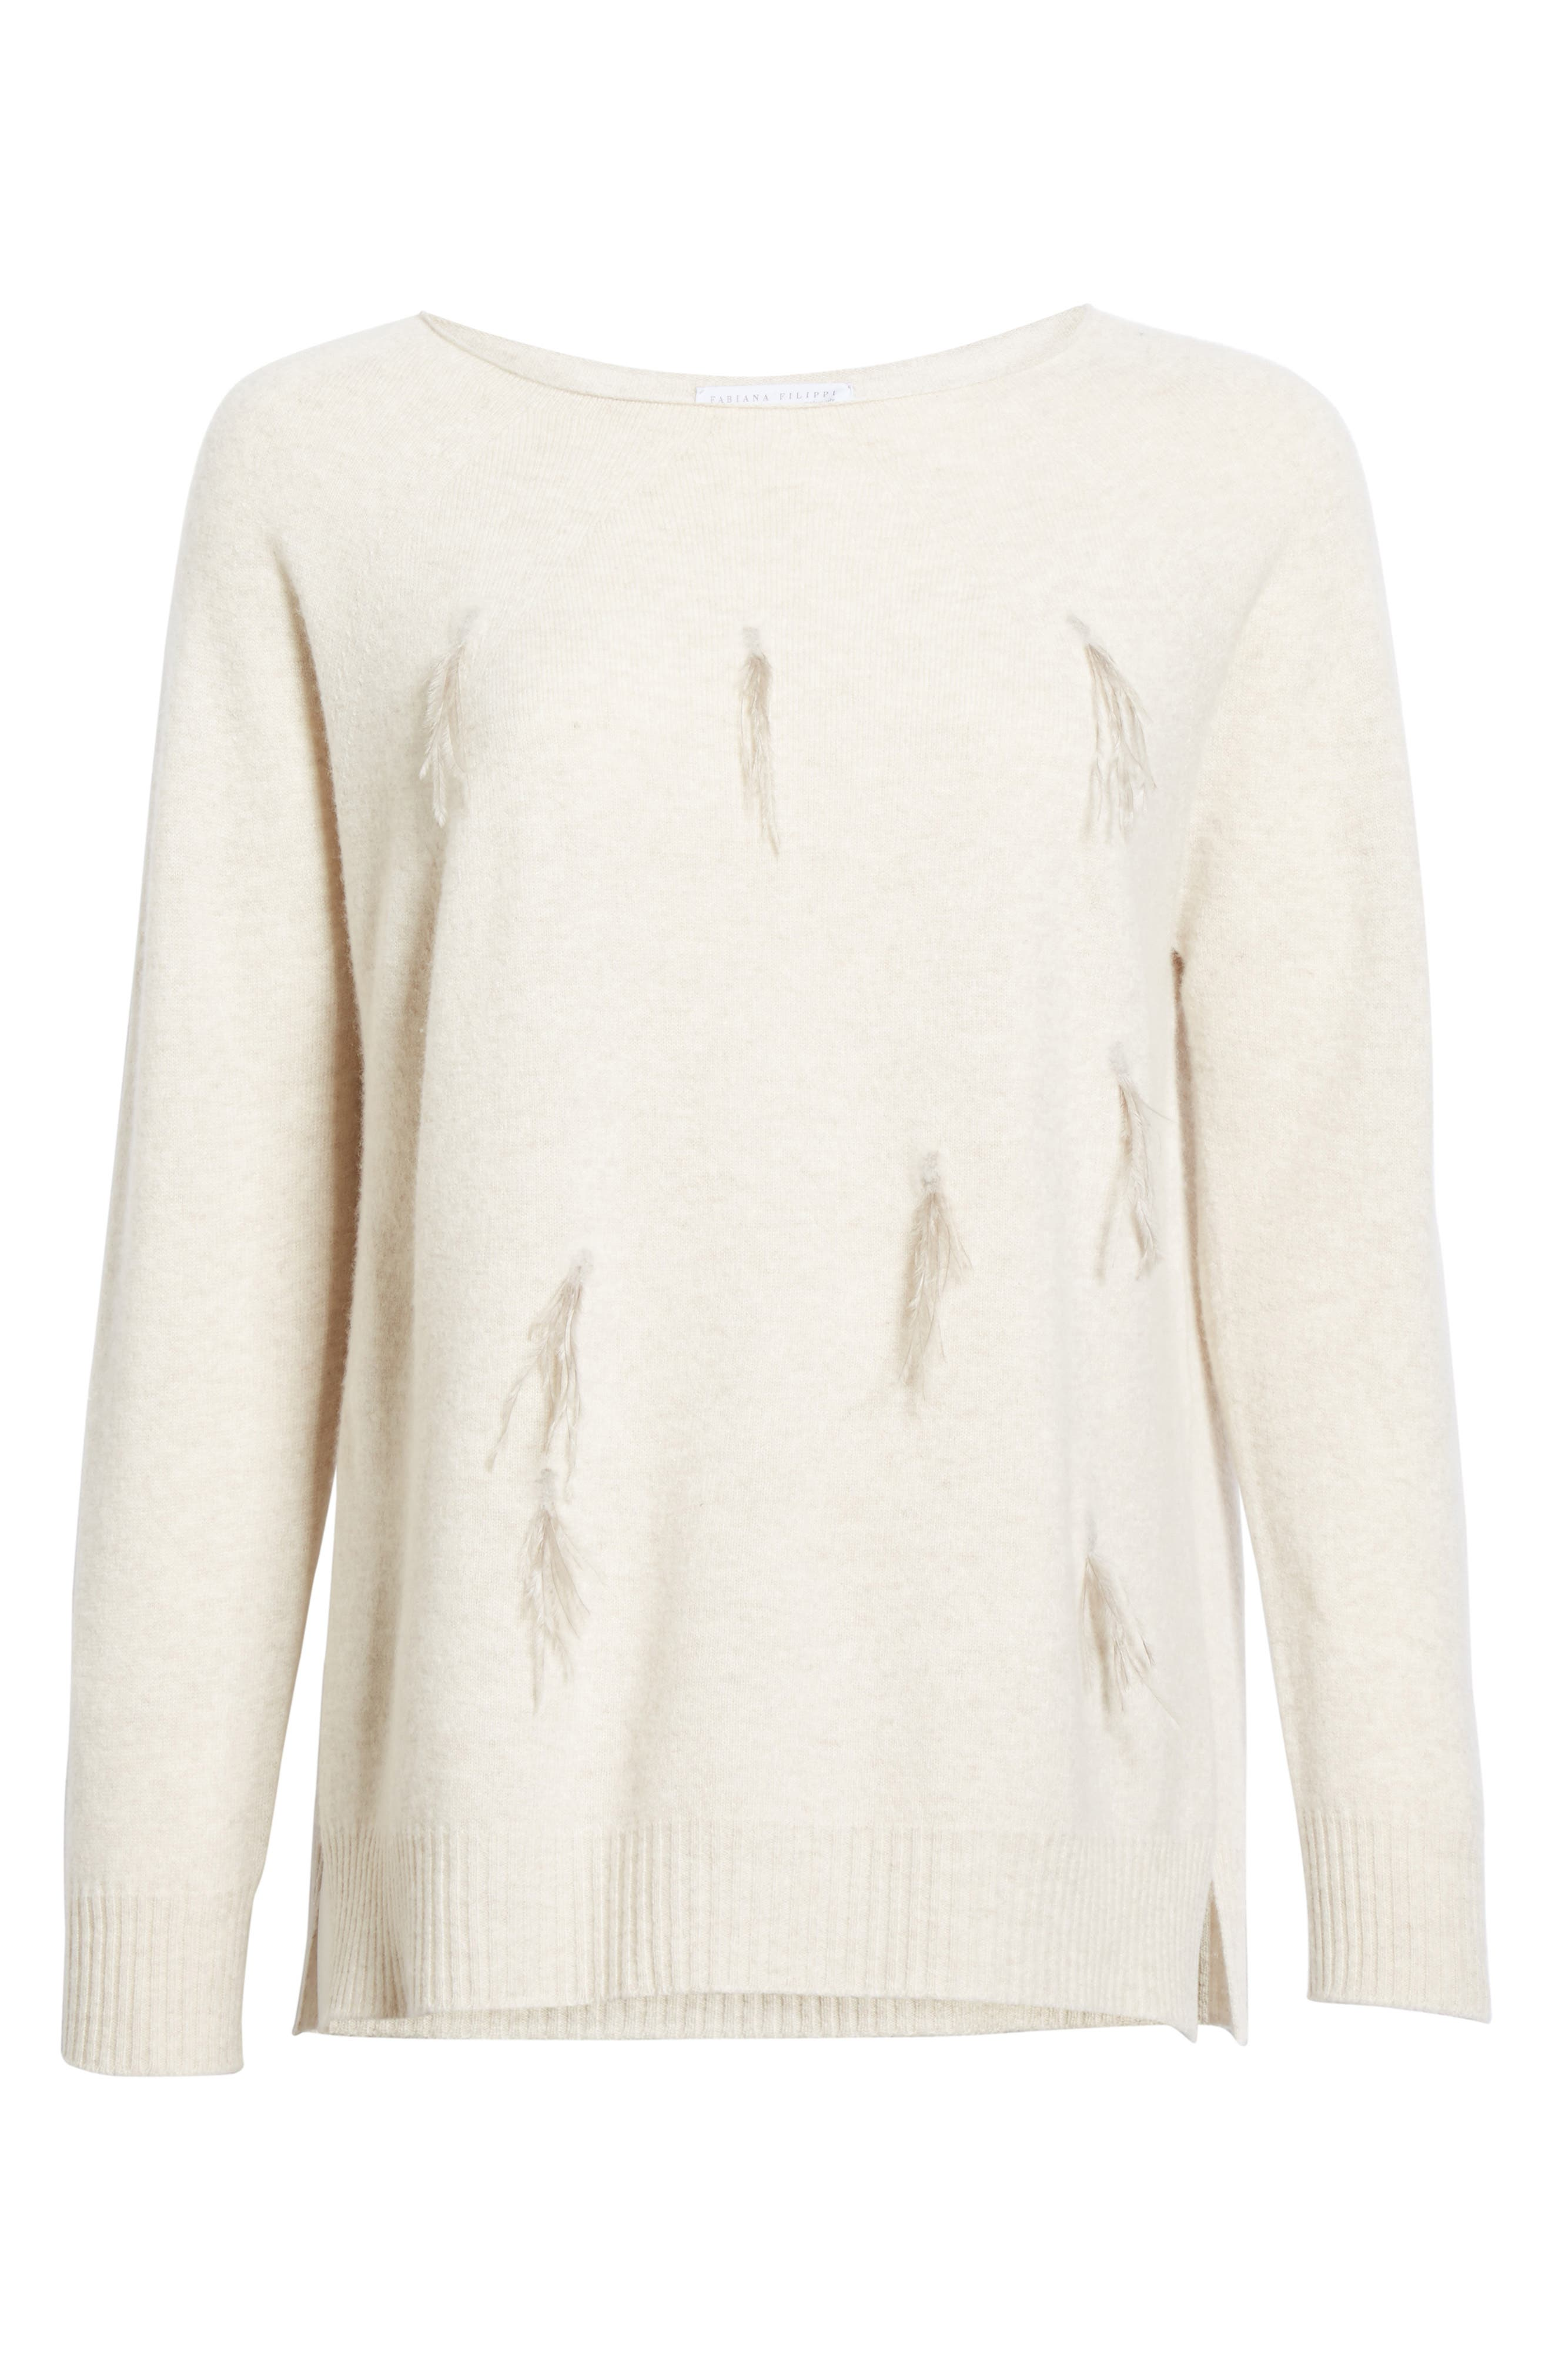 Needle Punch Ostrich Feather Trim Sweater,                             Alternate thumbnail 4, color,                             Oatmeal